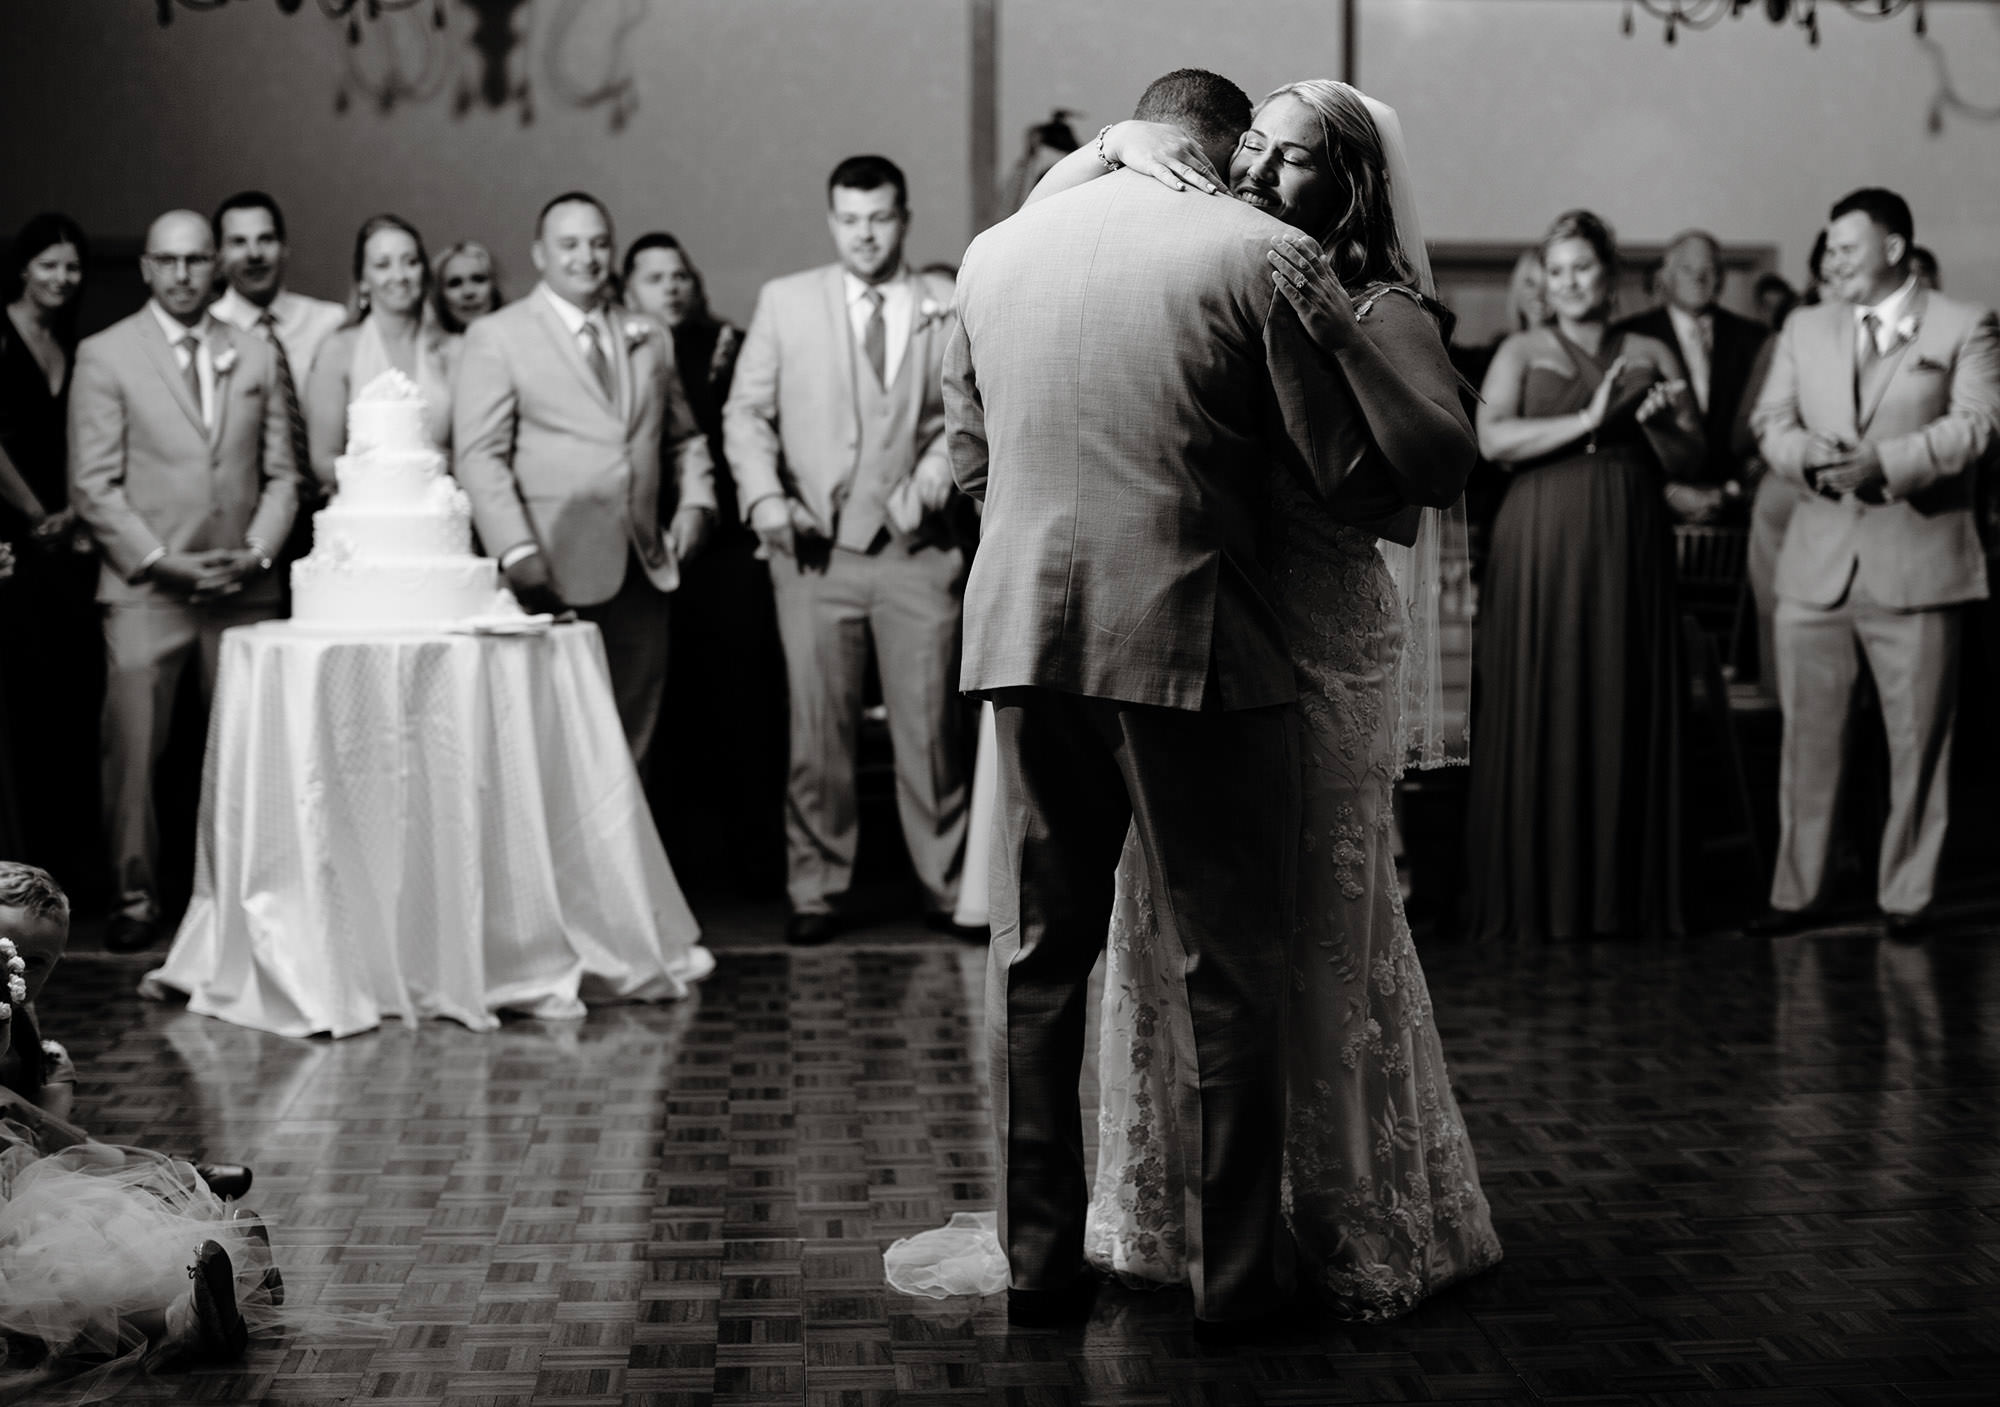 The bride and groom share their first dance during their Wequassett Resort wedding.